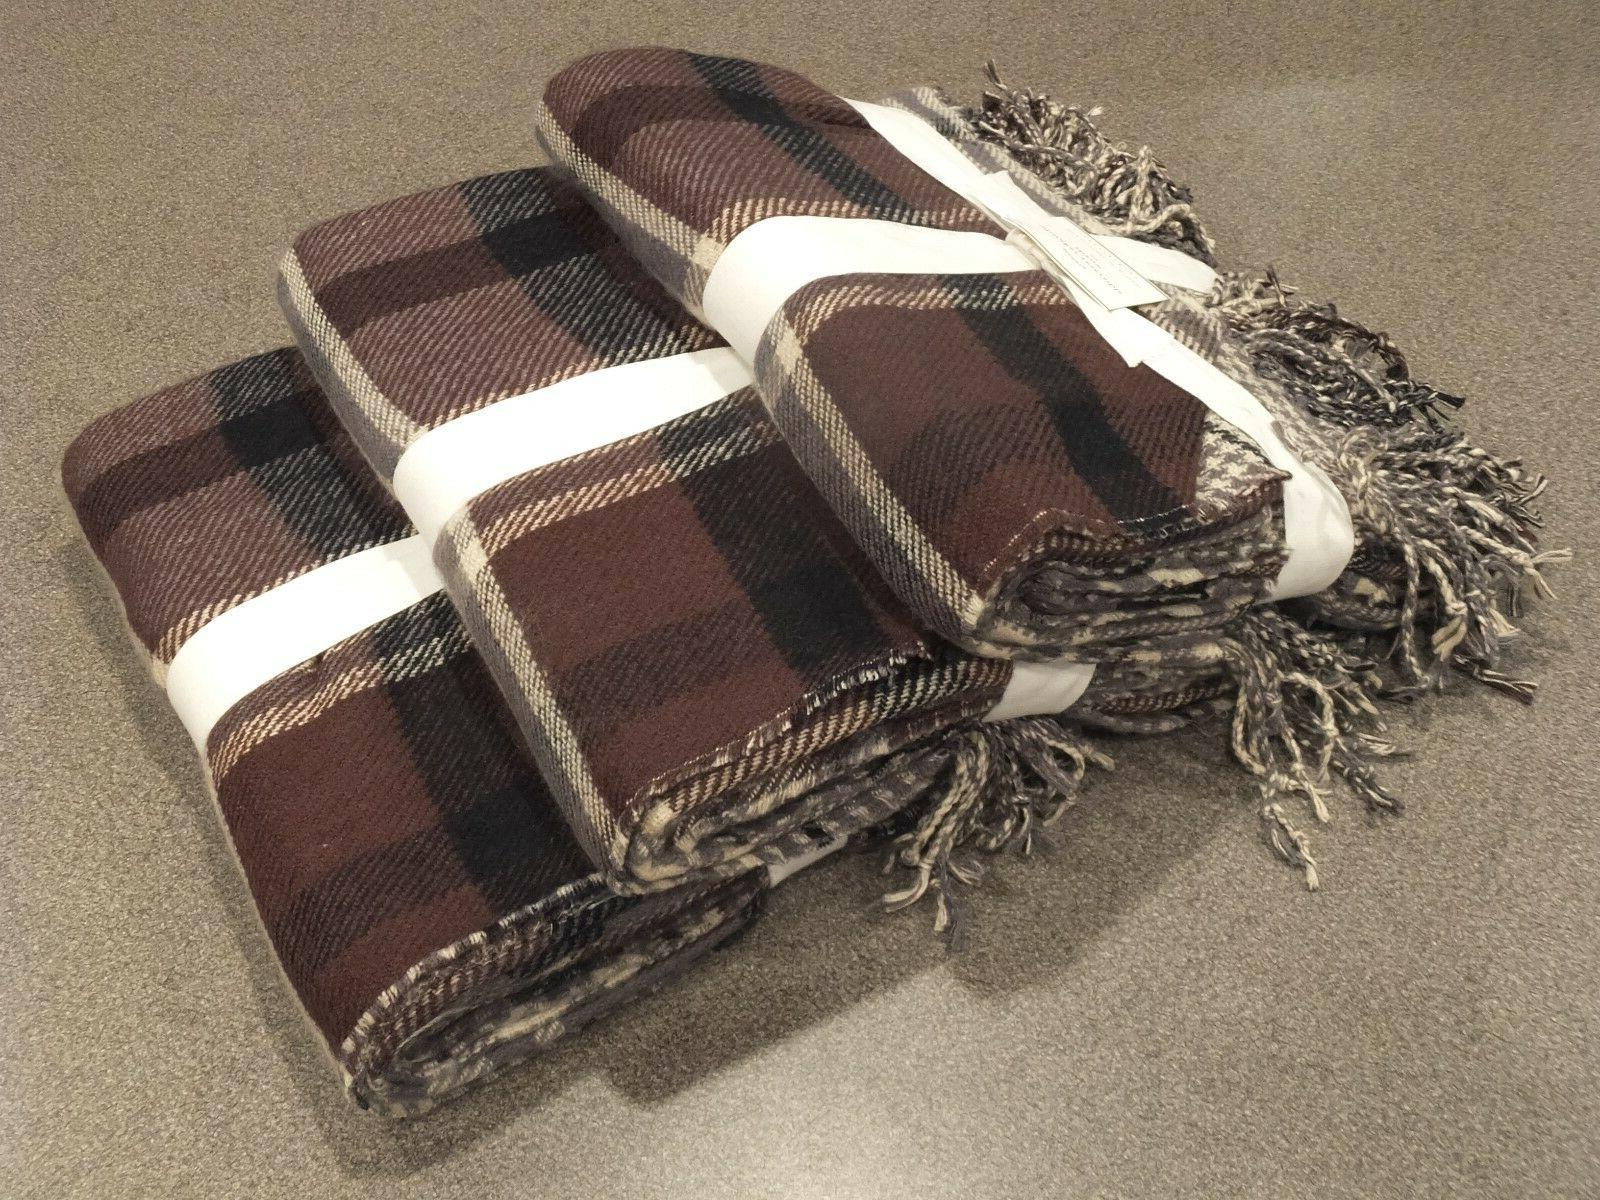 New Plaid Blanket